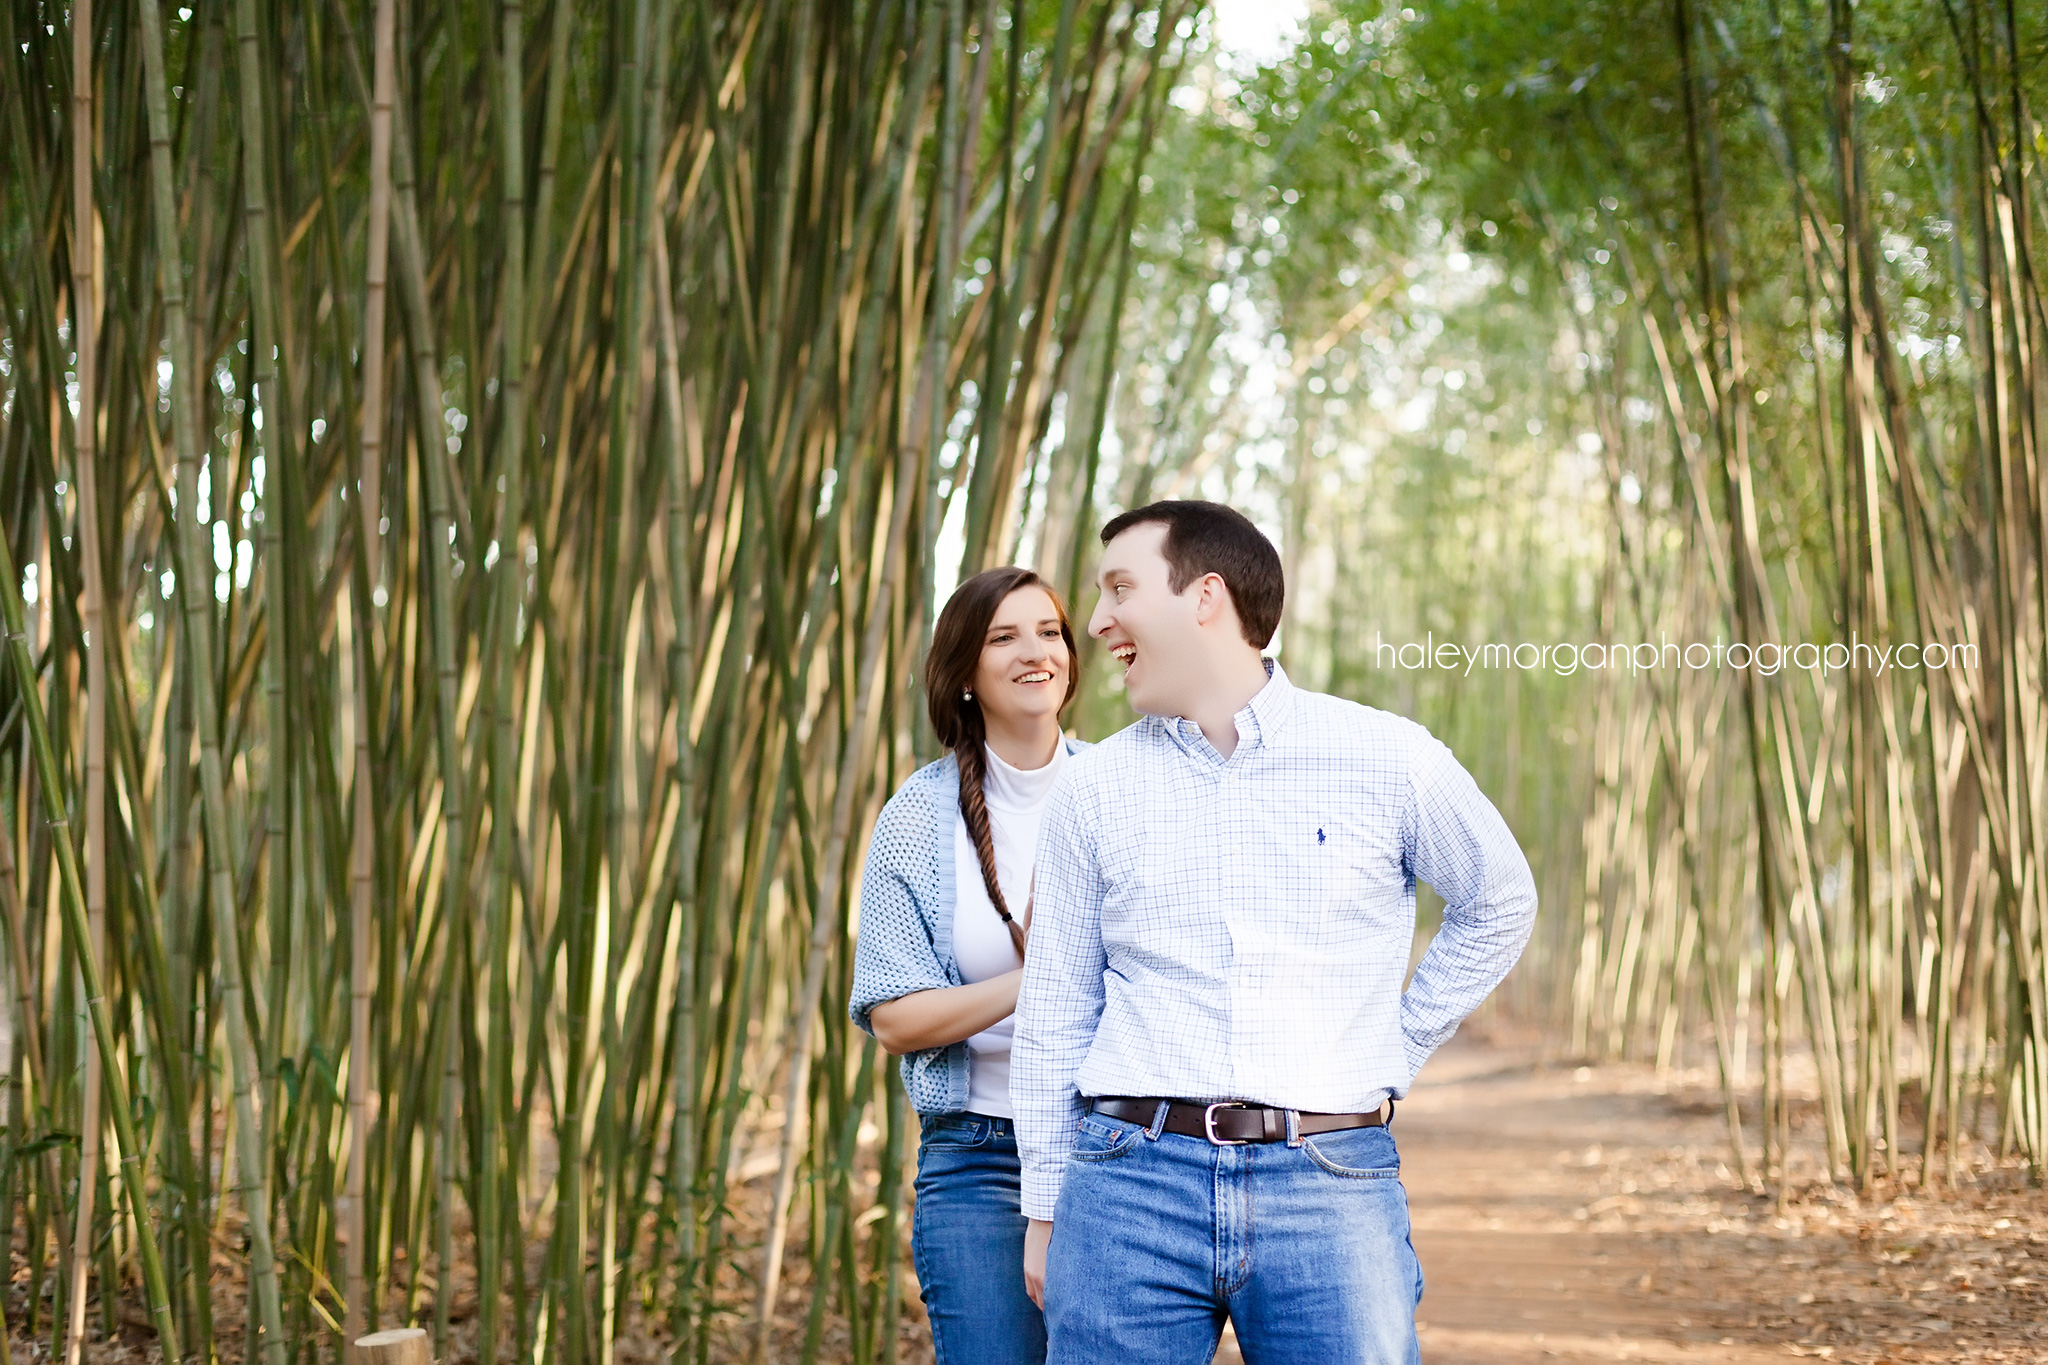 Denver Engagement Photographer, Denver Engagement Photography, Denver Engagement Session, Denver Wedding Photographer, Denver Wedding Photography, Denver Wedding, Colorado Wedding Photographer, Colorado wedding photography, Colorado Photographer, Haley Morgan Photography, Botanical Gardens Photoshoot, Botanical Gardens, Birmingham Botanical Gardens, Birmingham Botanical Garden Engagement Session, Birmingham Botanical Garden Engagement Photoshoot, Birmingham Botanical Garden Engagement, Downtown Birmingham Photography, Downtown Birmingham Engagement, Haley Morgan, Audra Morgan, Josh Chiles, Audra Chiles, Chiles Wedding